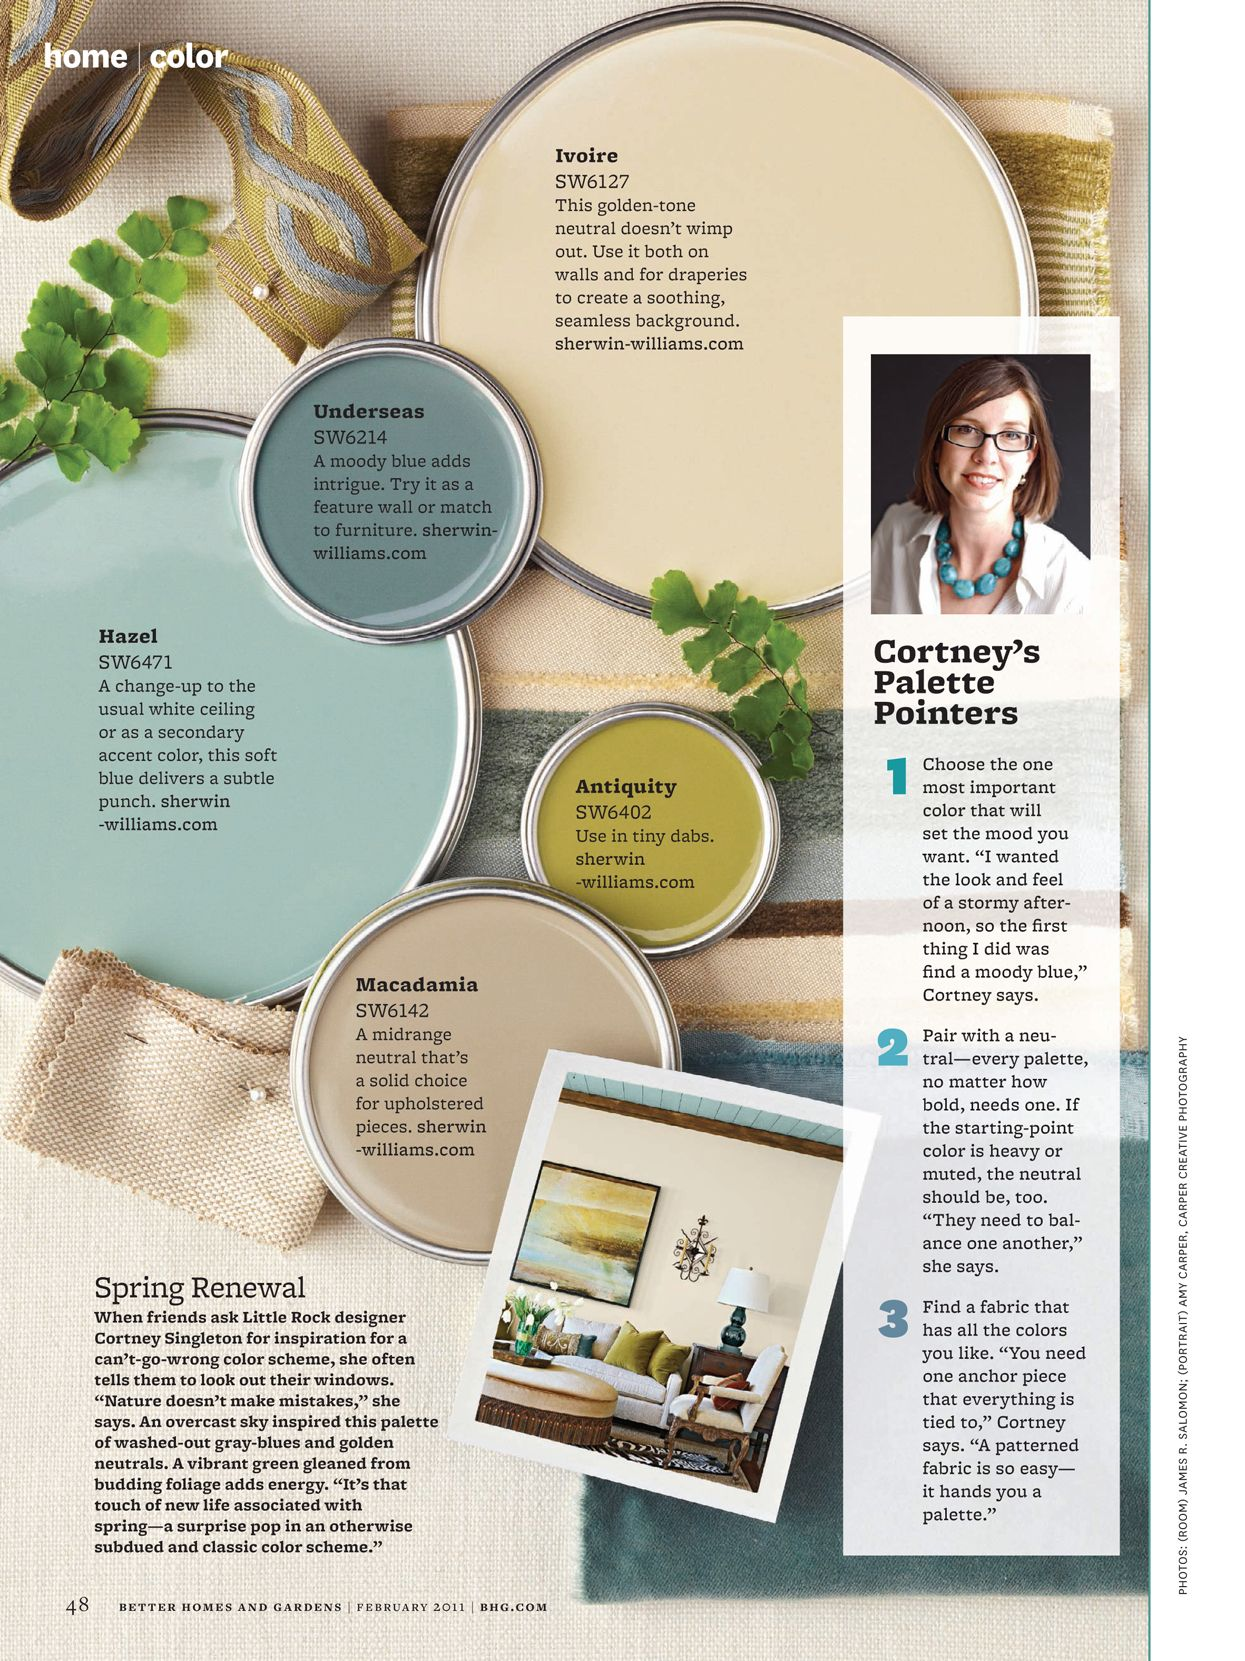 Studio Better Homes And Gardens Paint Colors Spring Renewal